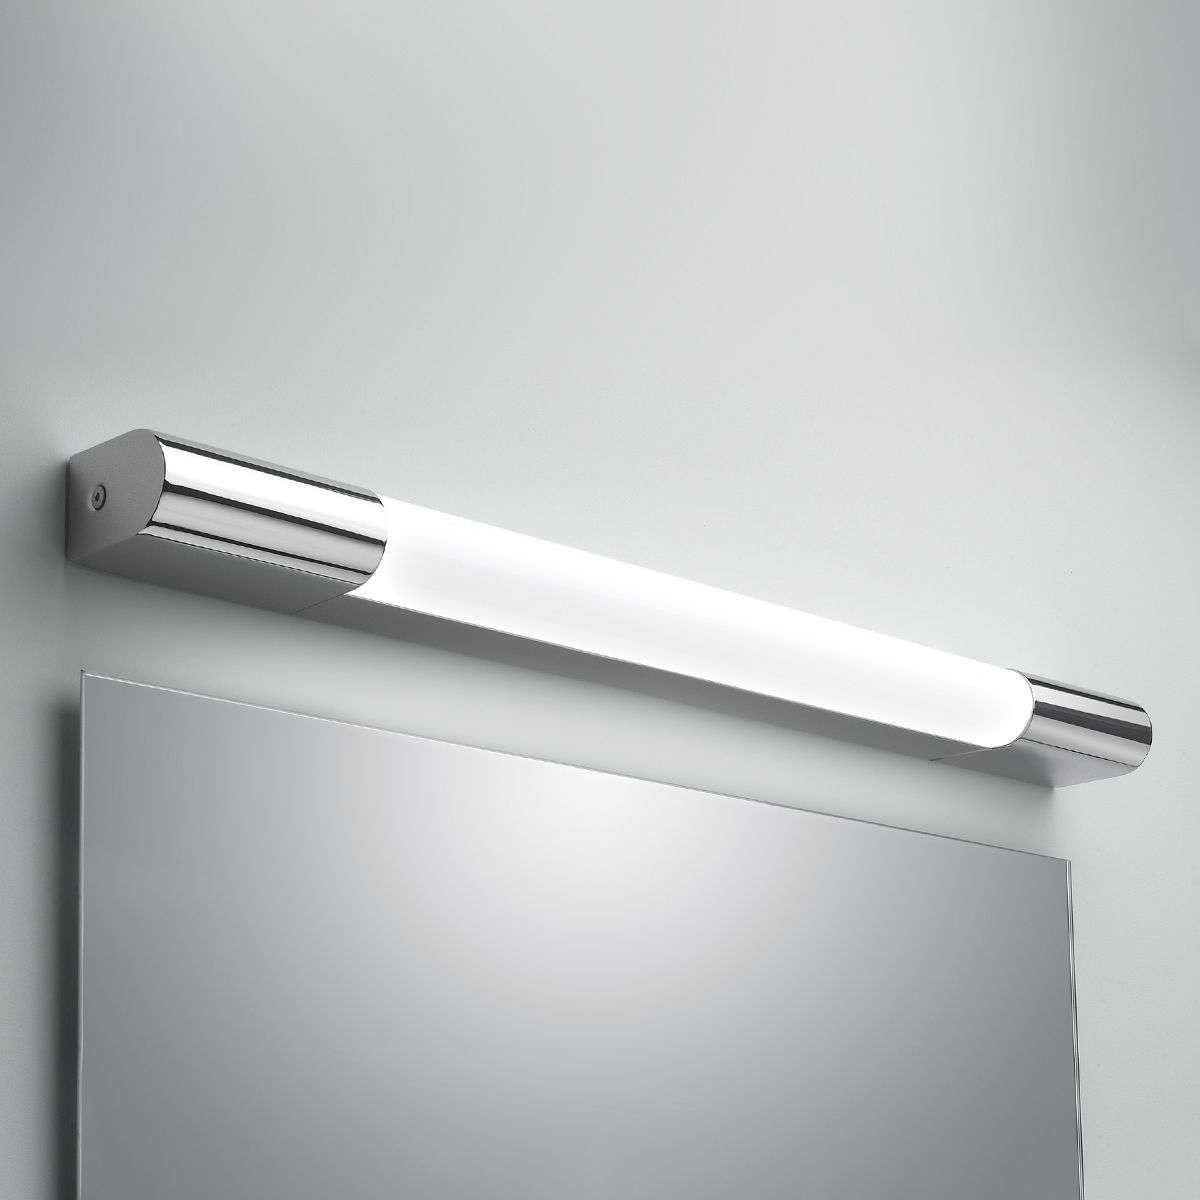 Palermo Wall Light 24 W 60 cm IP44-1020040-34